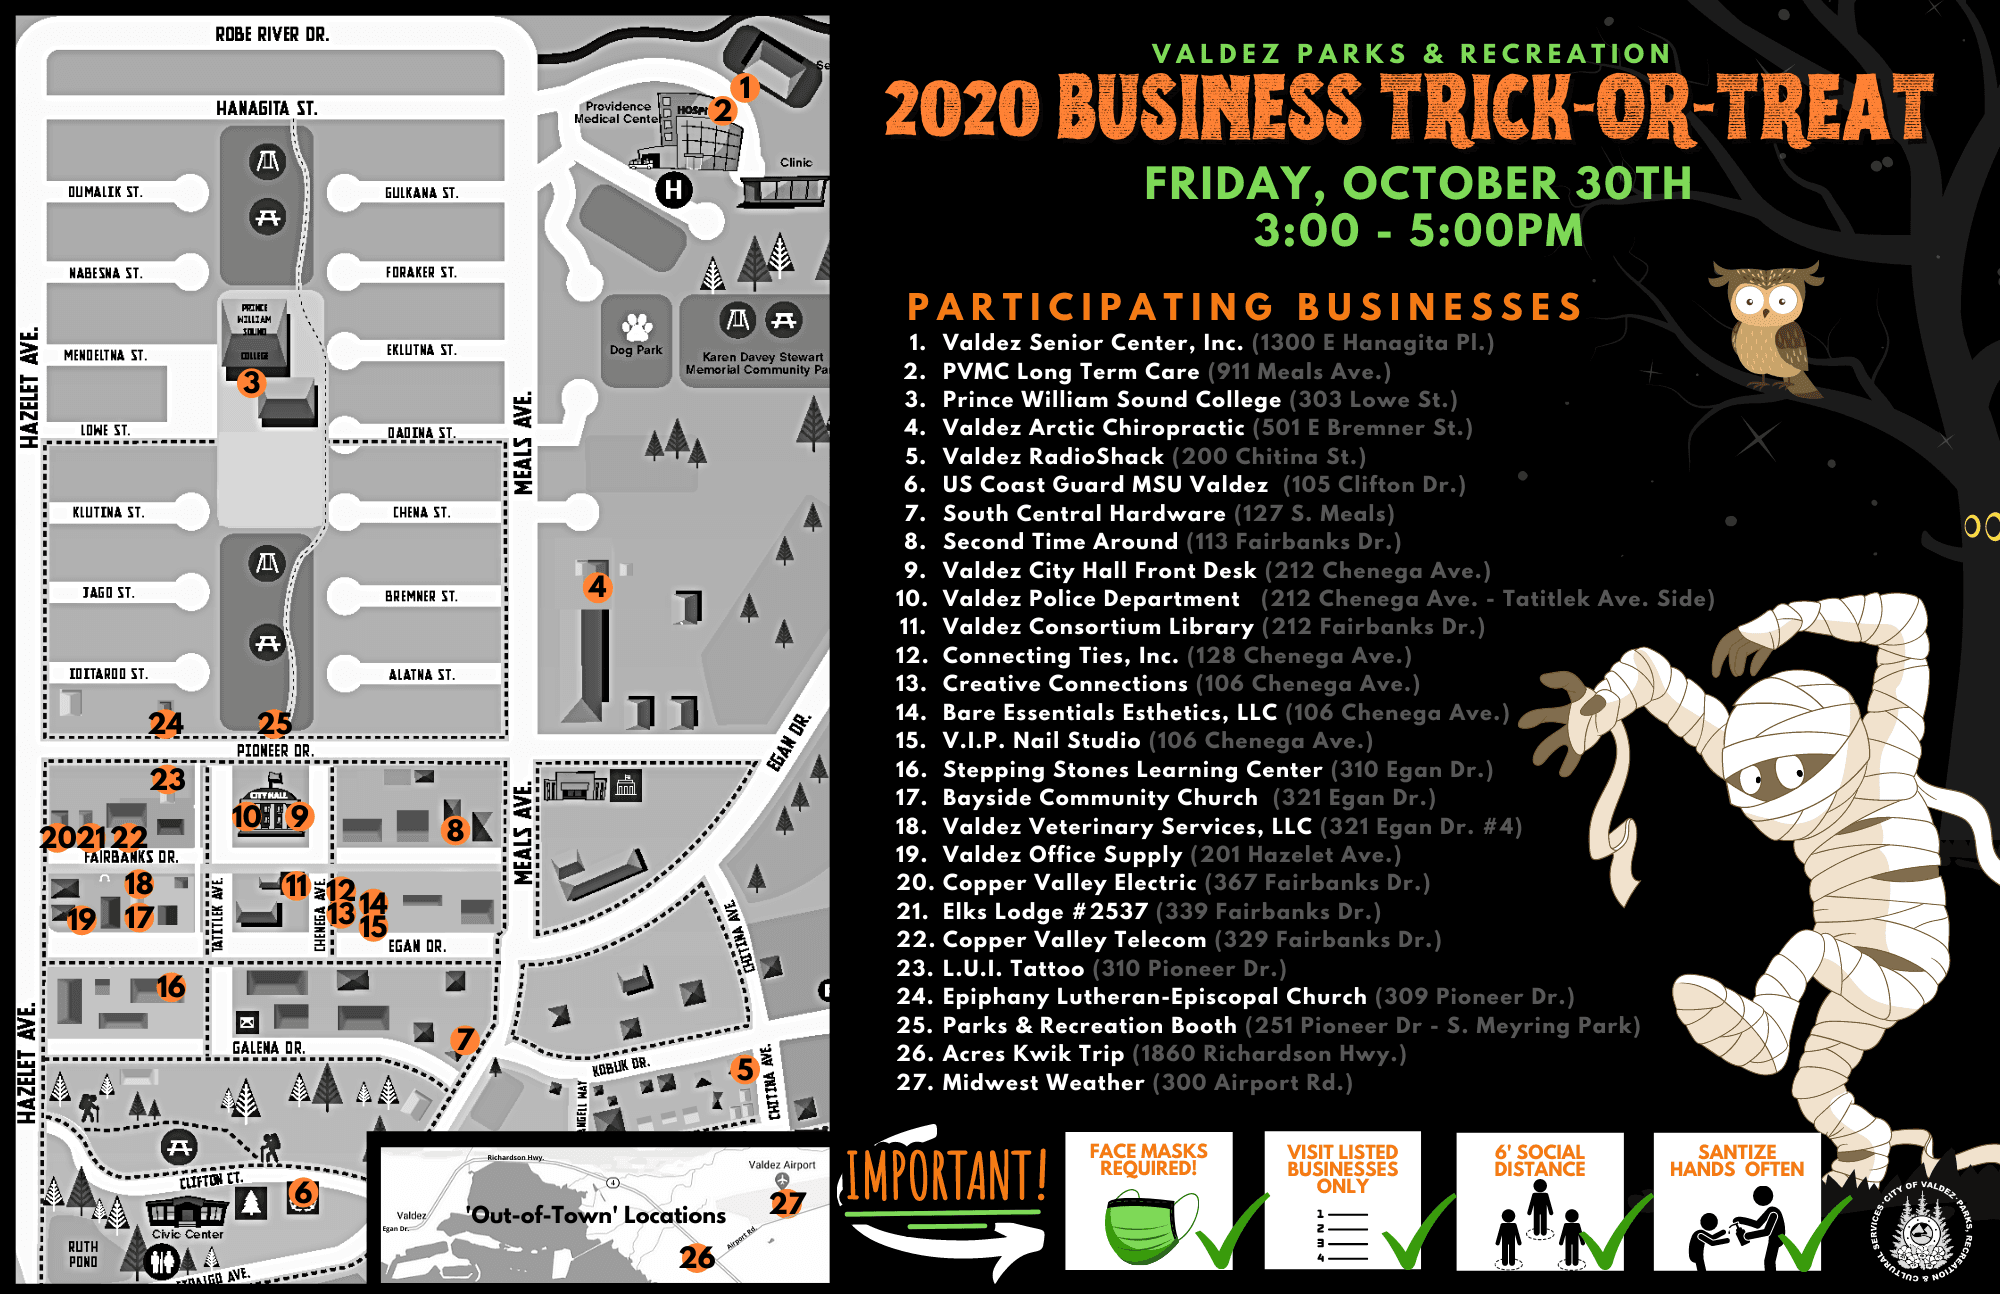 Business Trick-or-Treat Map and List - FINAL